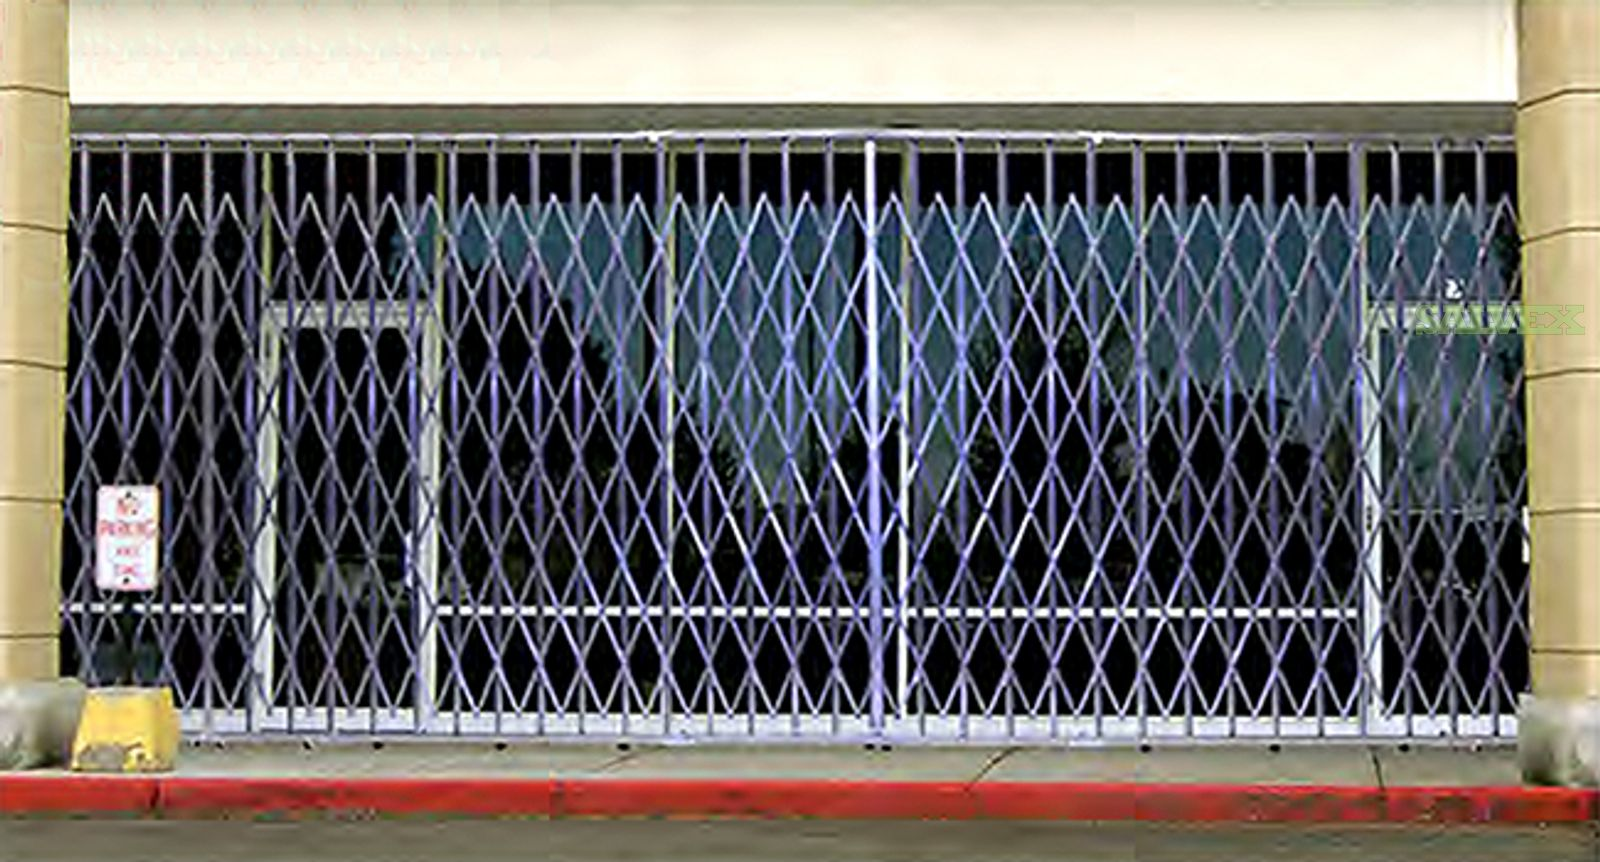 Commercial Storefront Security Grill (160 Ft) in California